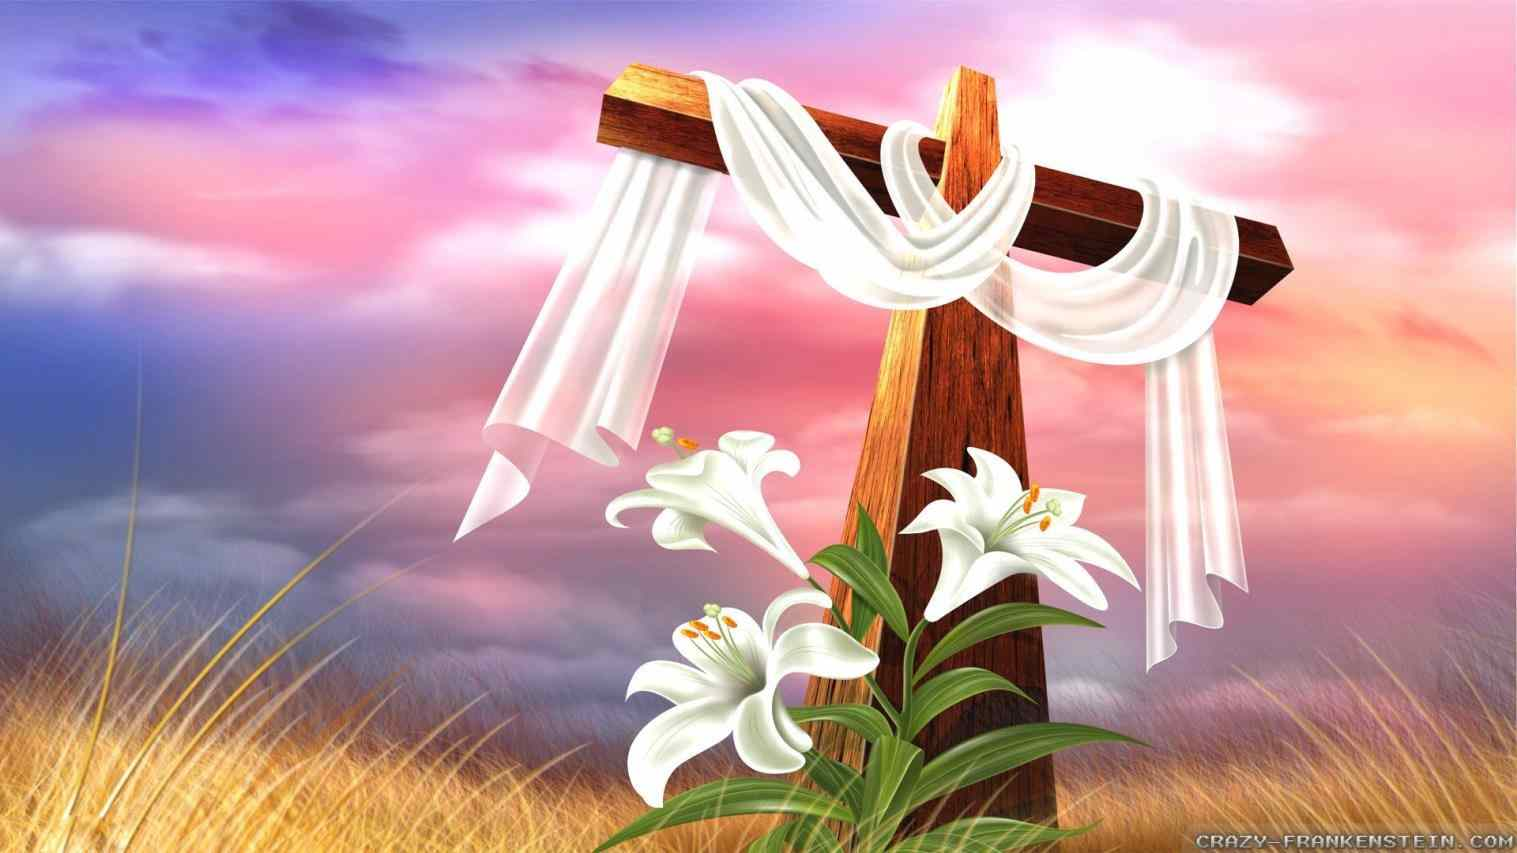 Happy S New Hd Toanimationscom Hd Religious Easter 1517x853